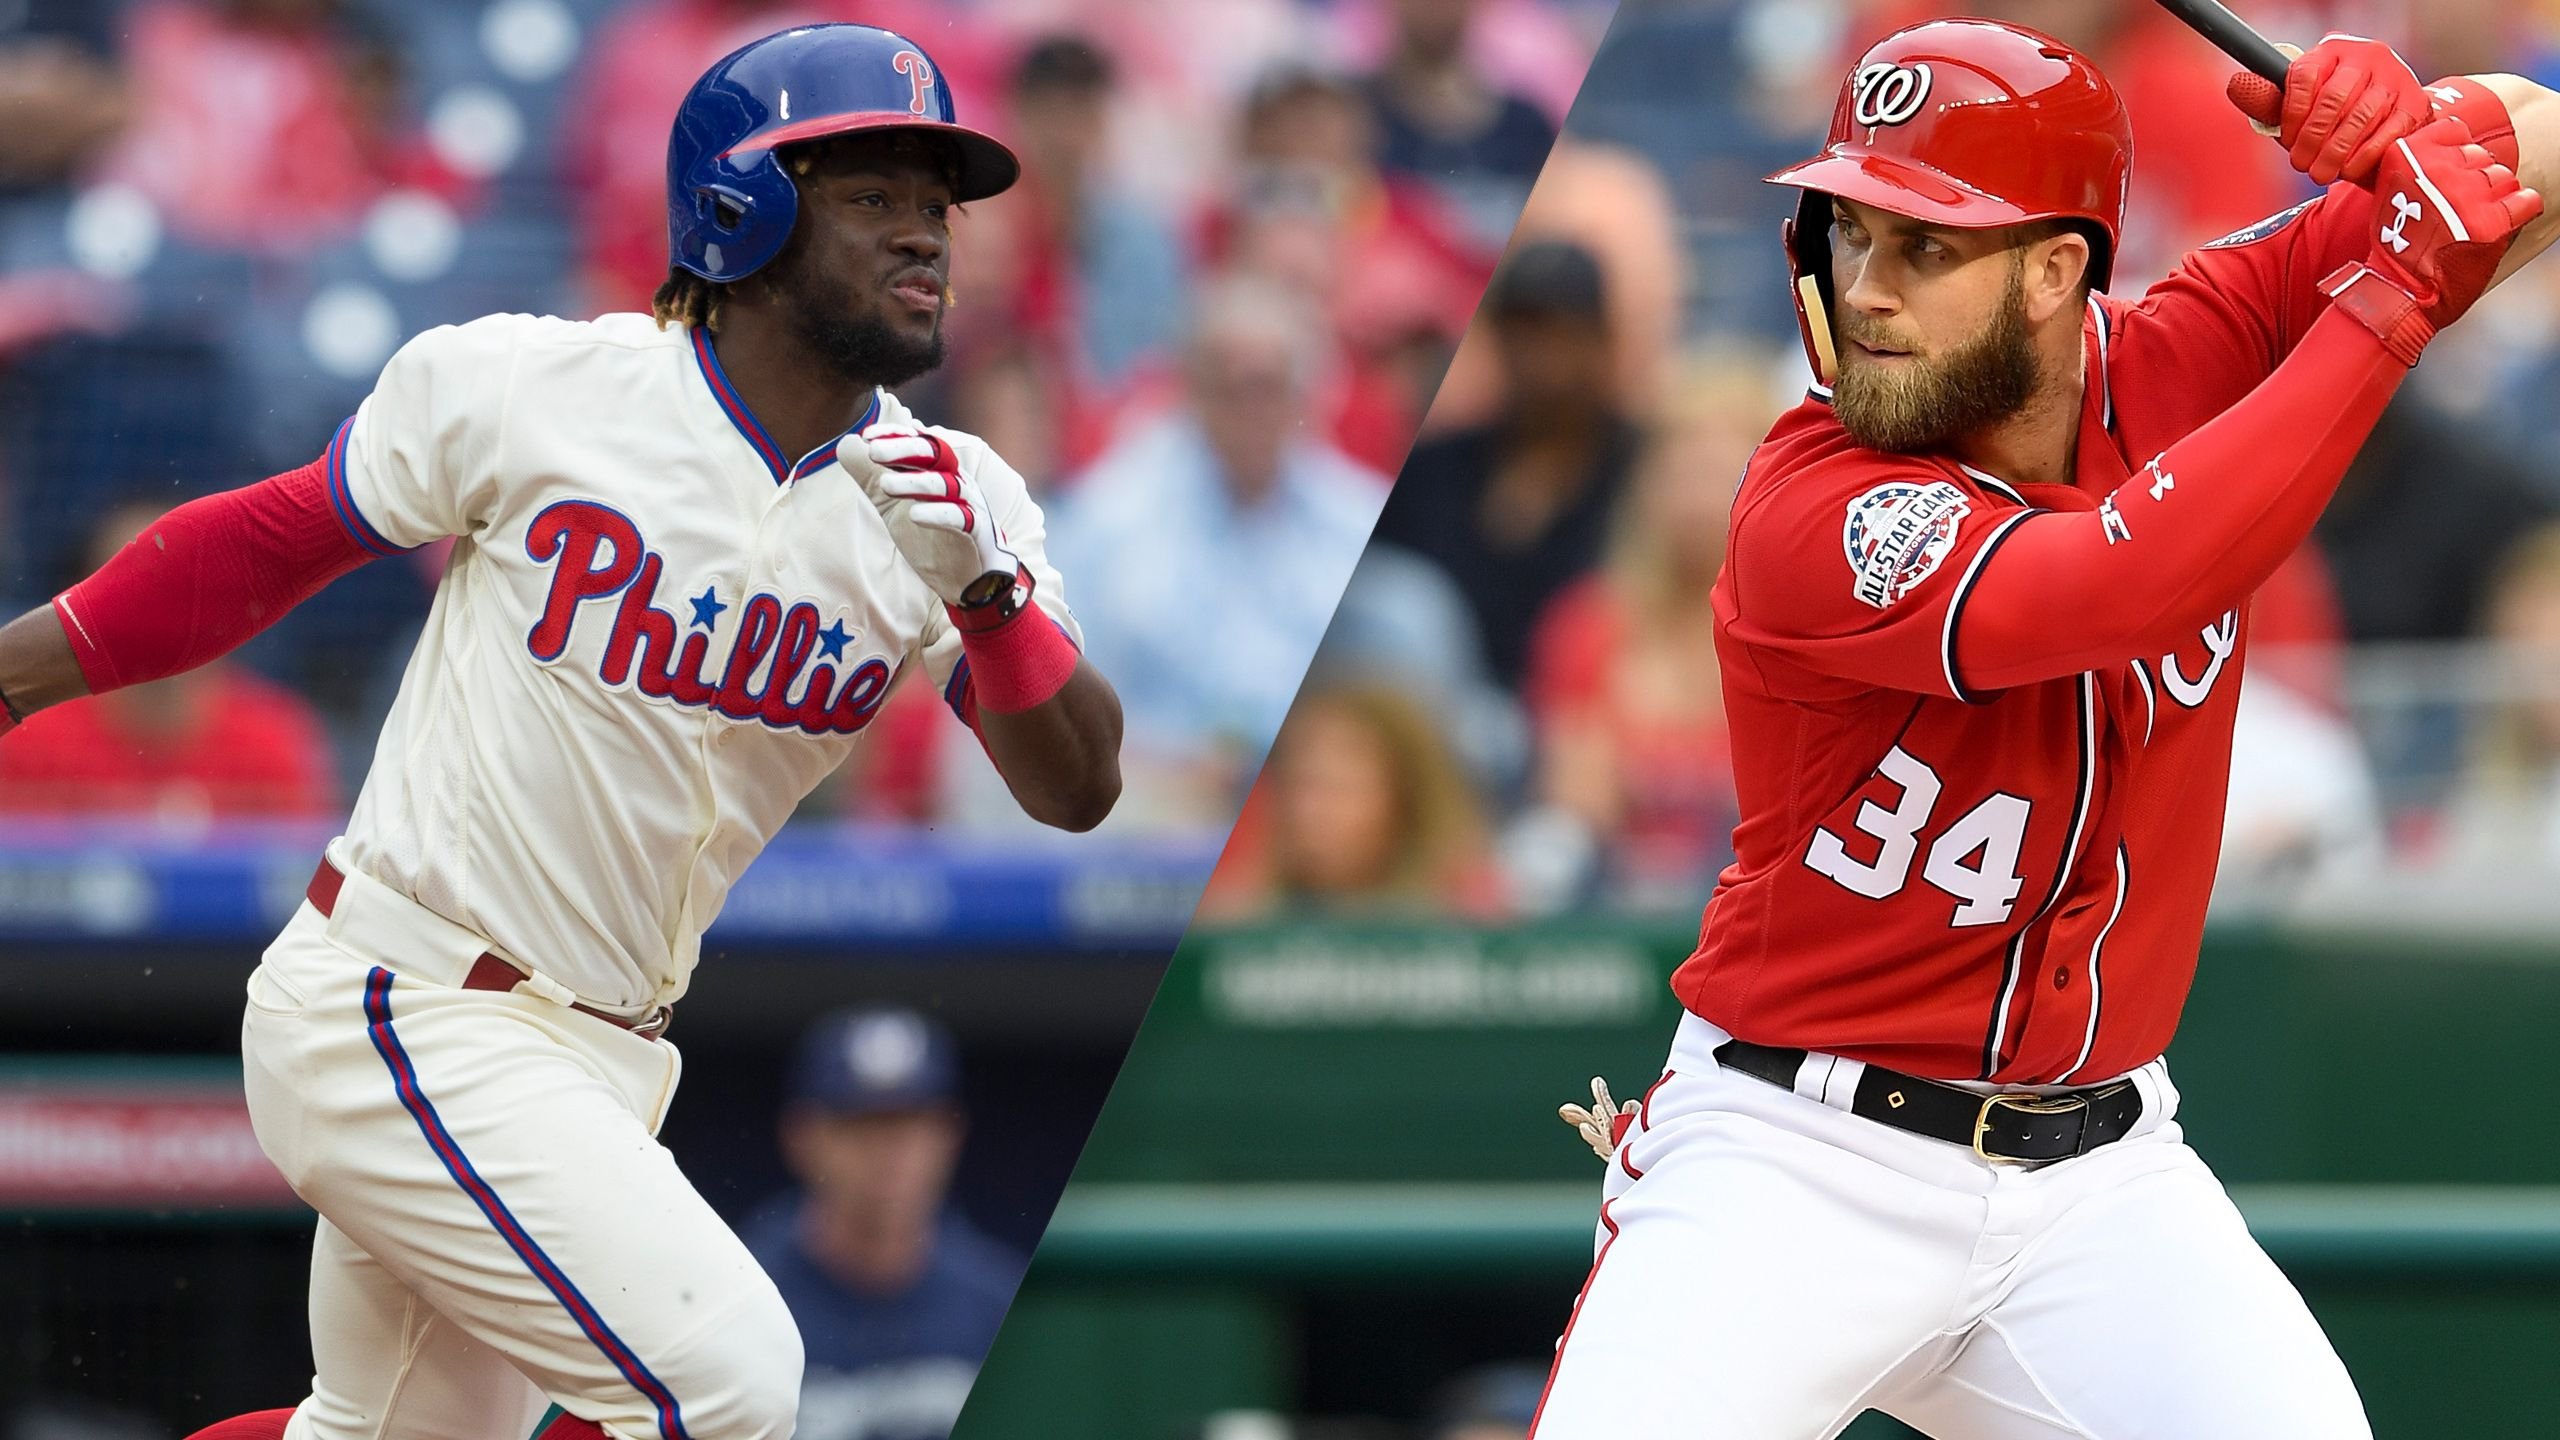 Philadelphia Phillies vs. Washington Nationals (re-air)